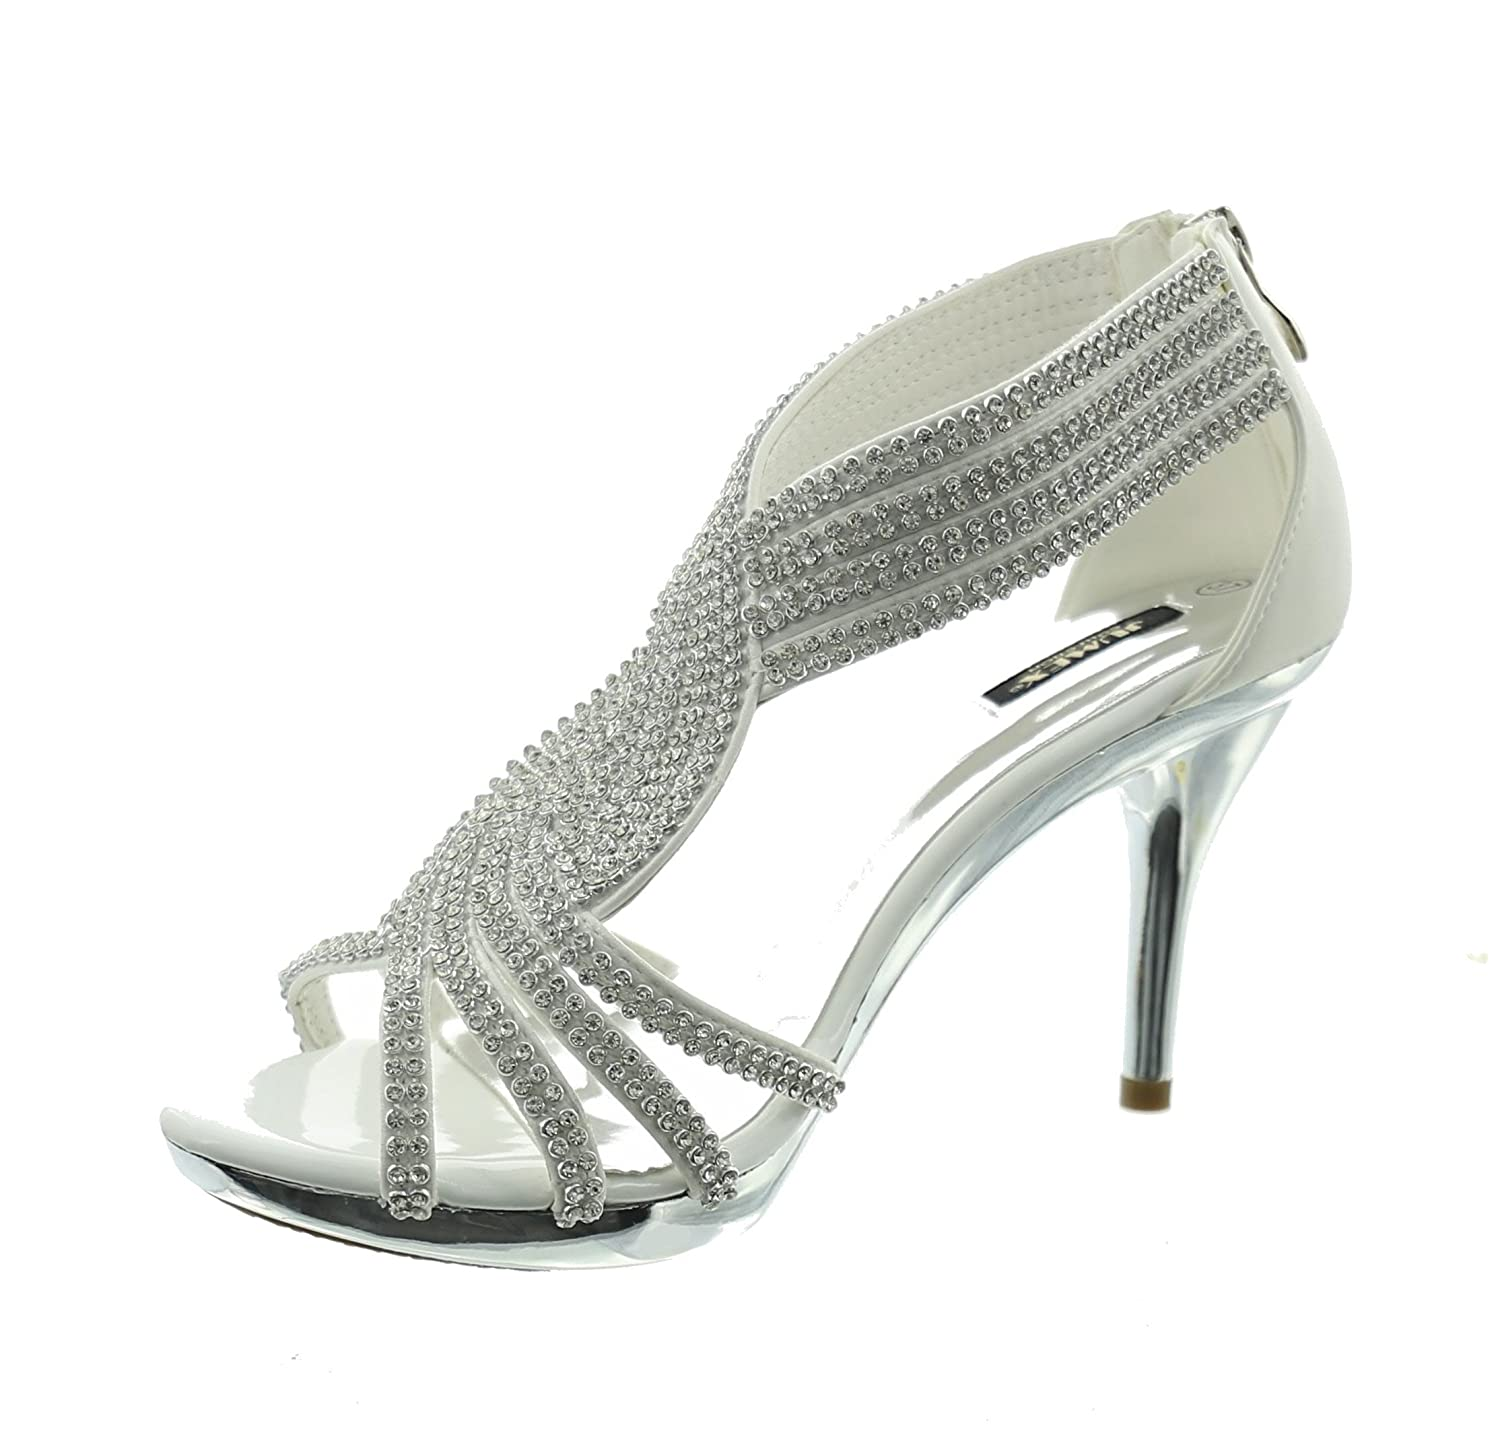 2ef137a46a43f1 Jumex Women s Fashion Sandals white Weiß  Amazon.co.uk  Shoes   Bags